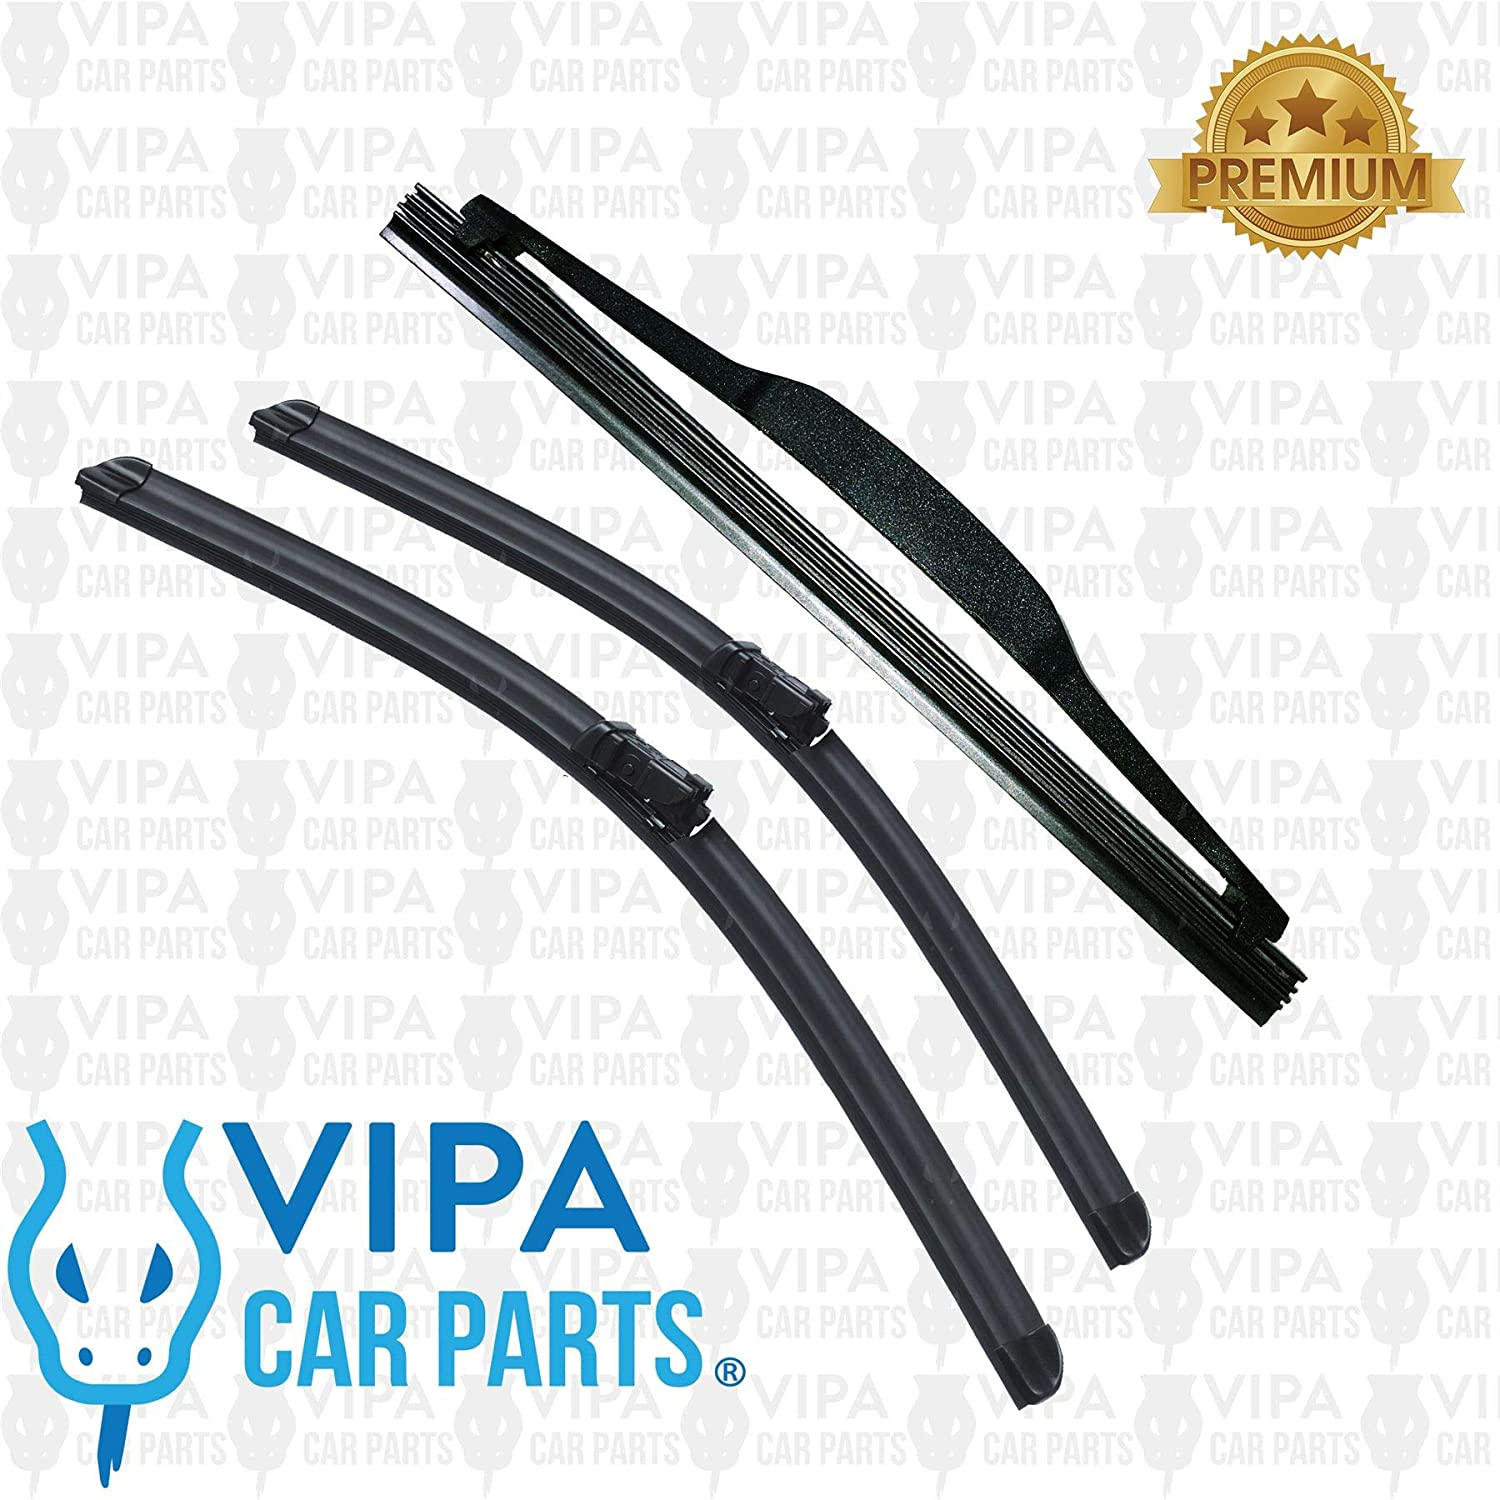 DS4 Hatchback Apr 2011 to Jul 2015 Rear Wiper Blade 1 x Blade